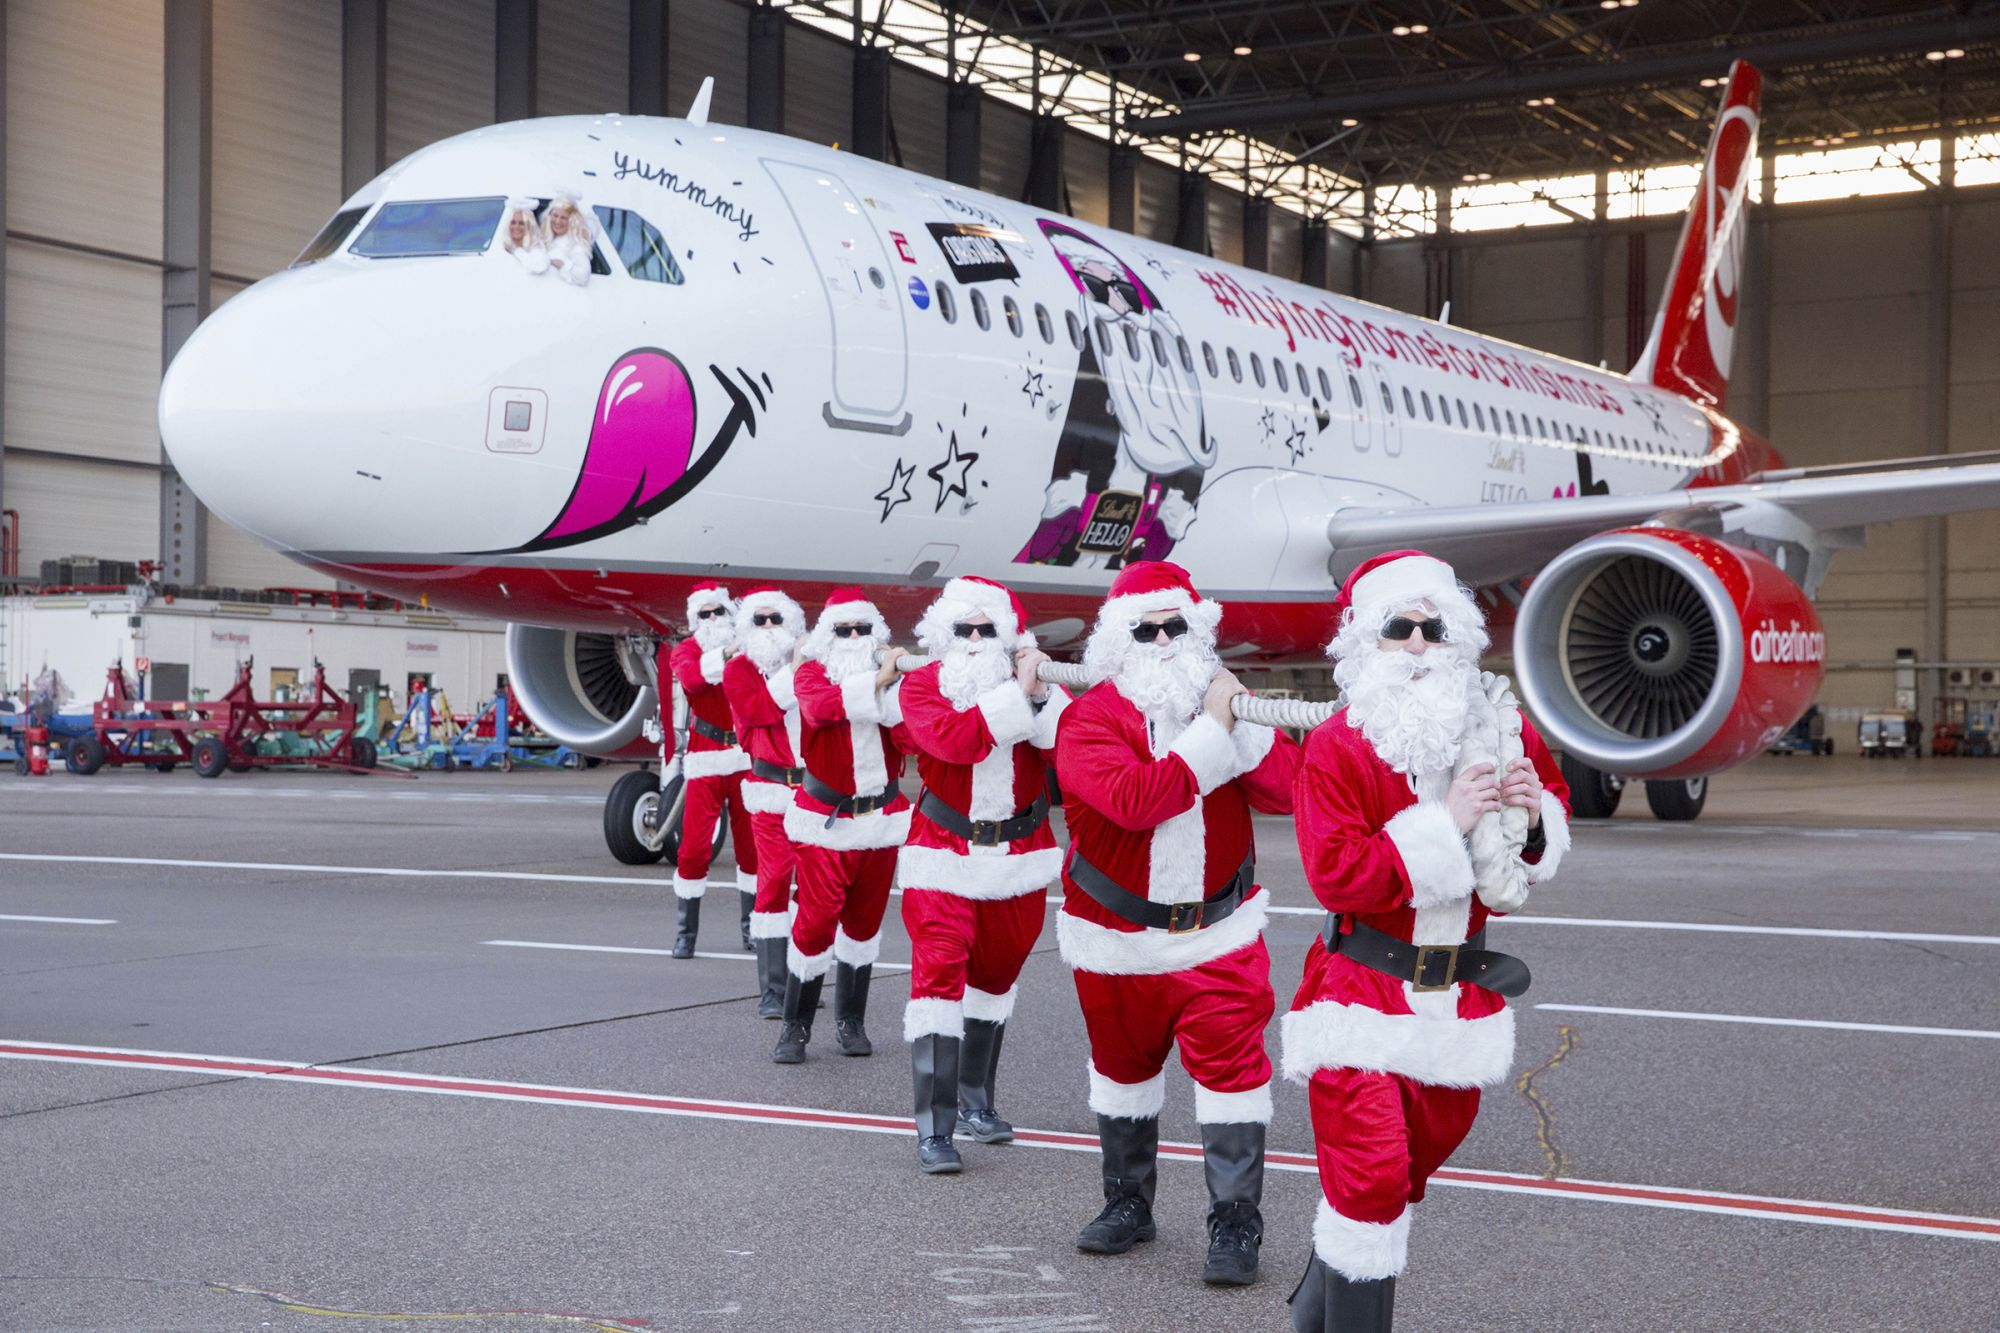 This year's Airberlin Christmas Flyer takes off for a new season